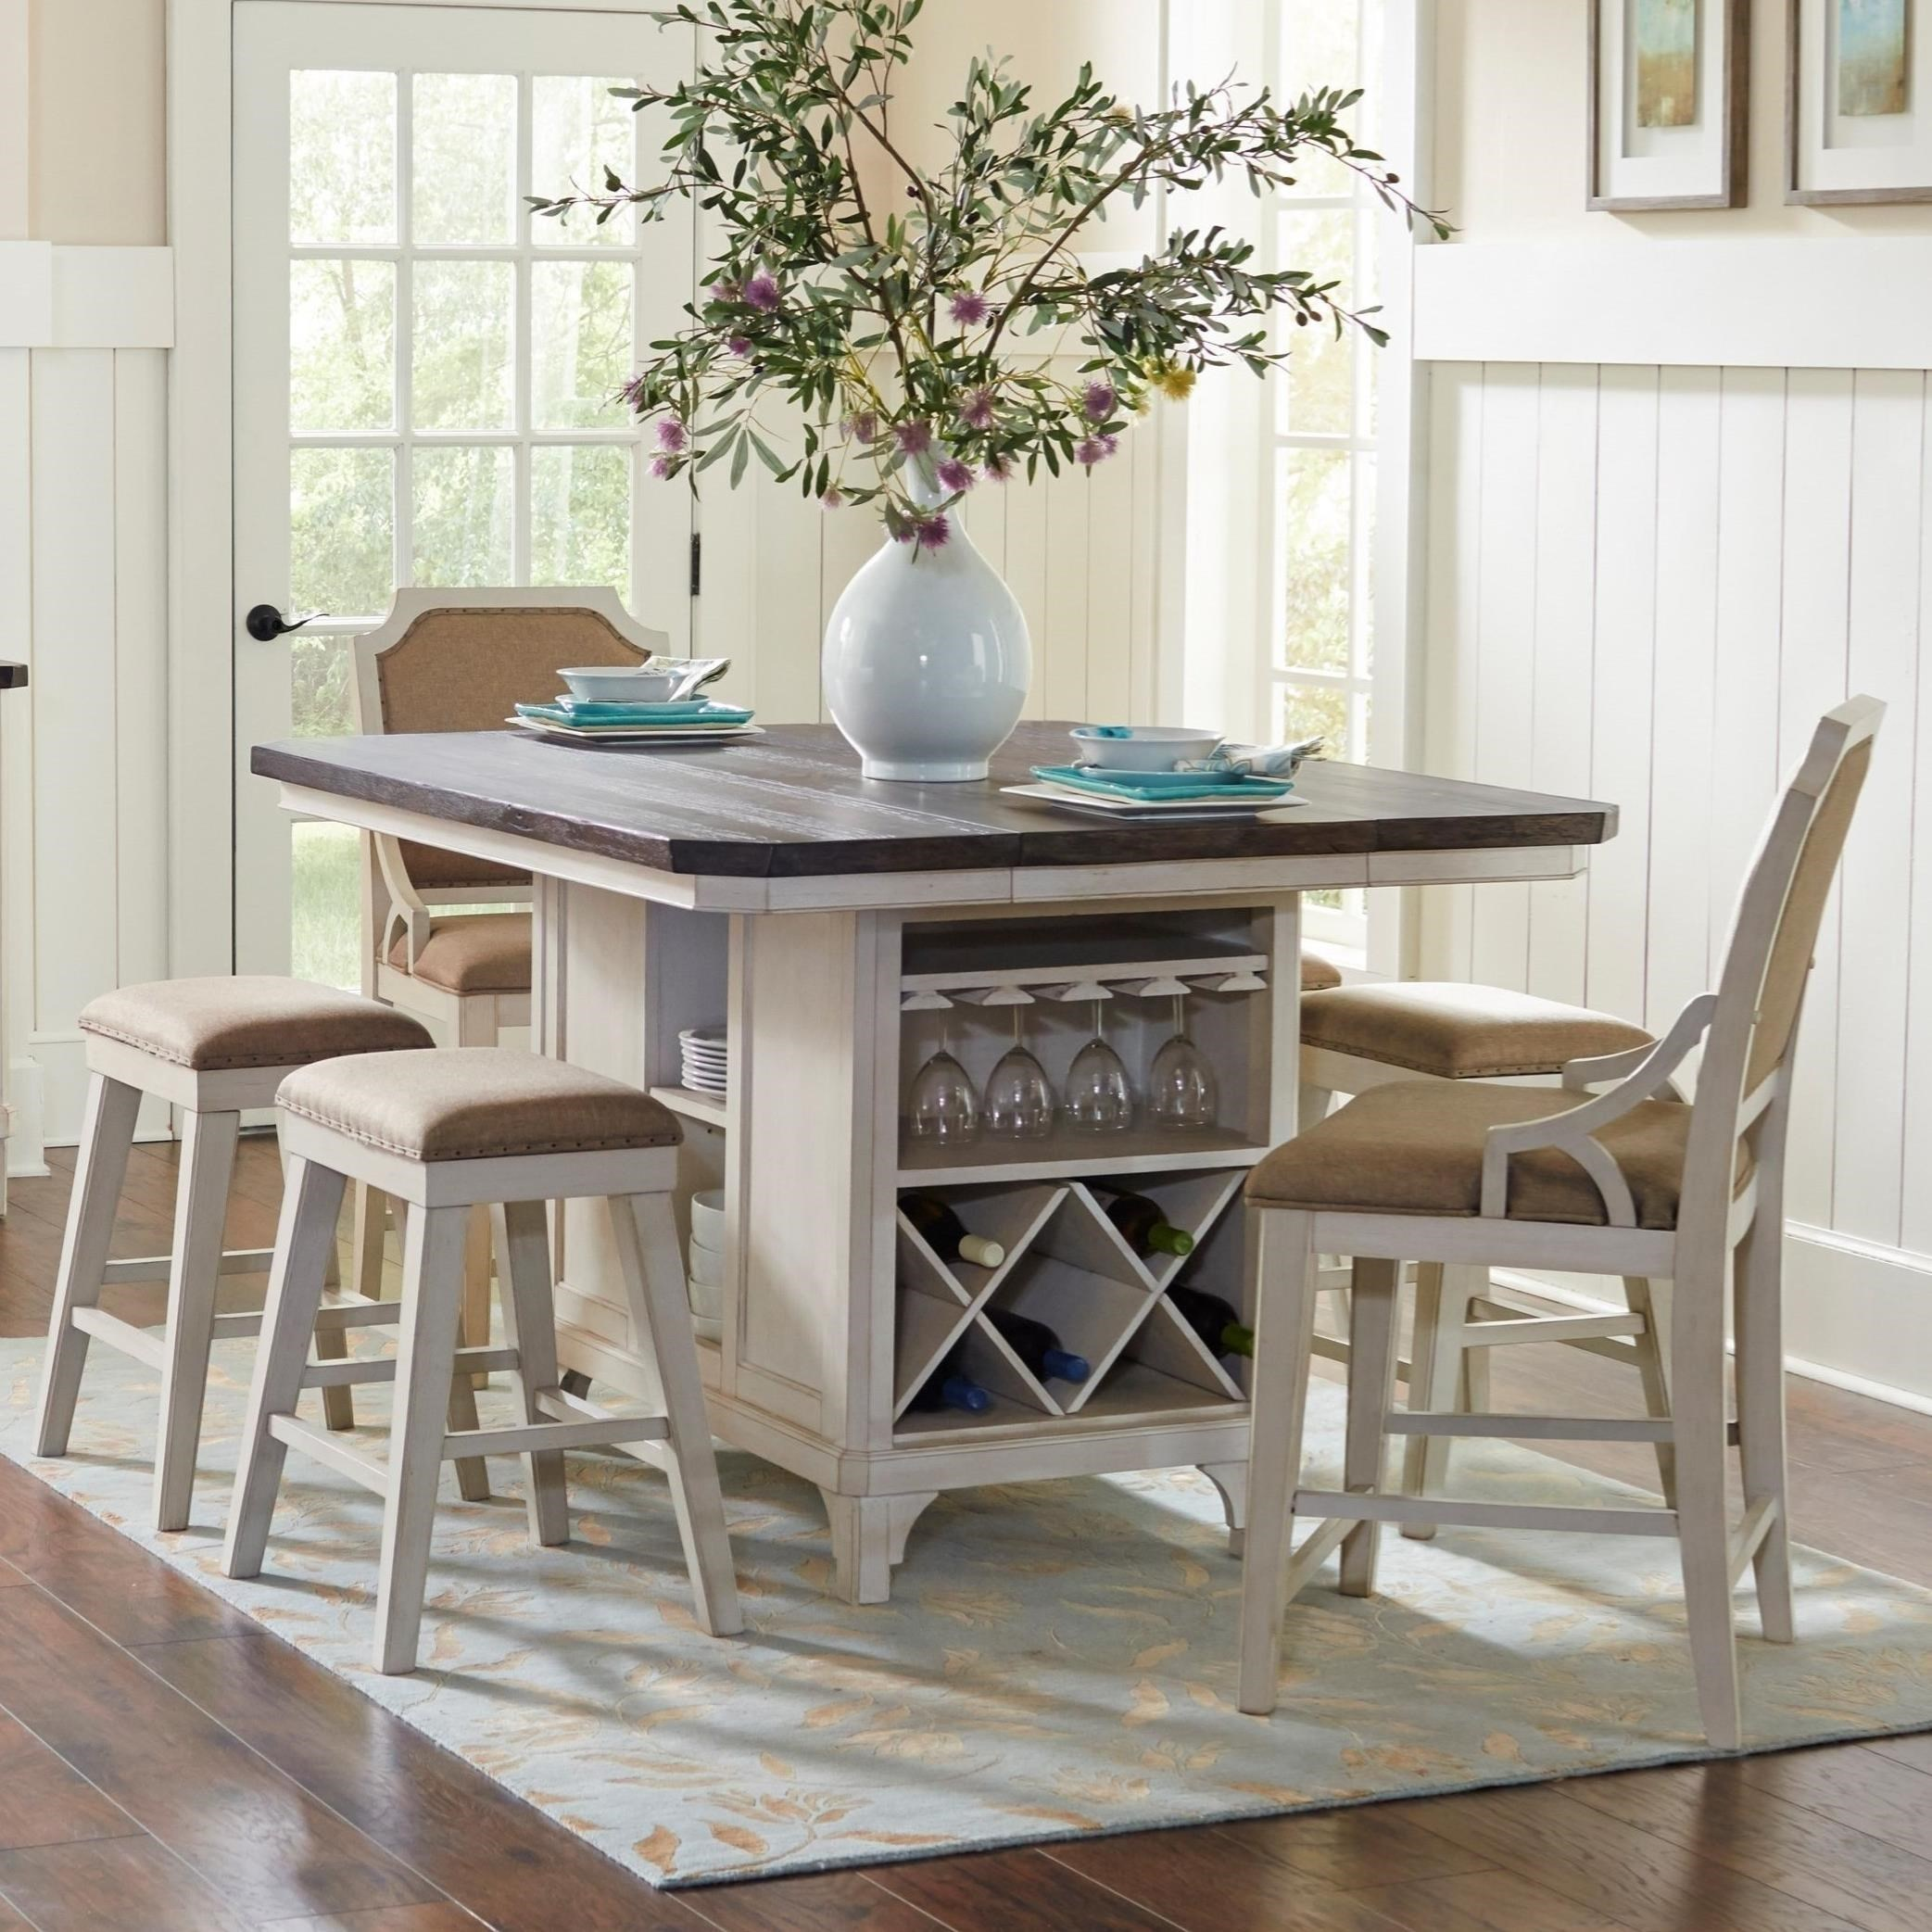 Avalon Furniture Mystic Cay 7-Piece Kitchen Island Table Set : 7 piece pub table set - pezcame.com